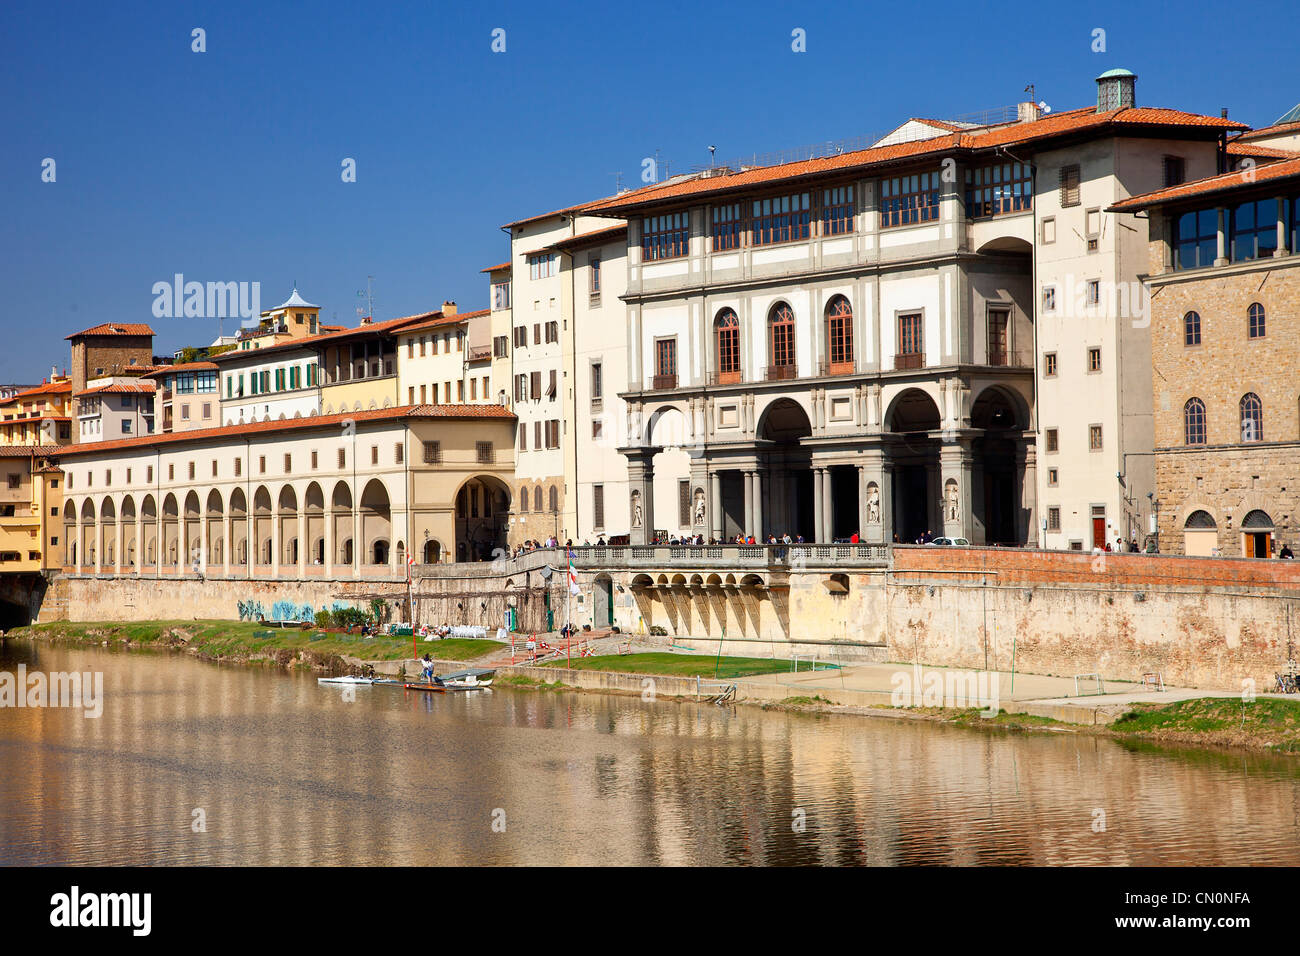 Europe, Italy, Florence, The river Arno and Uffizi Gallery - Stock Image